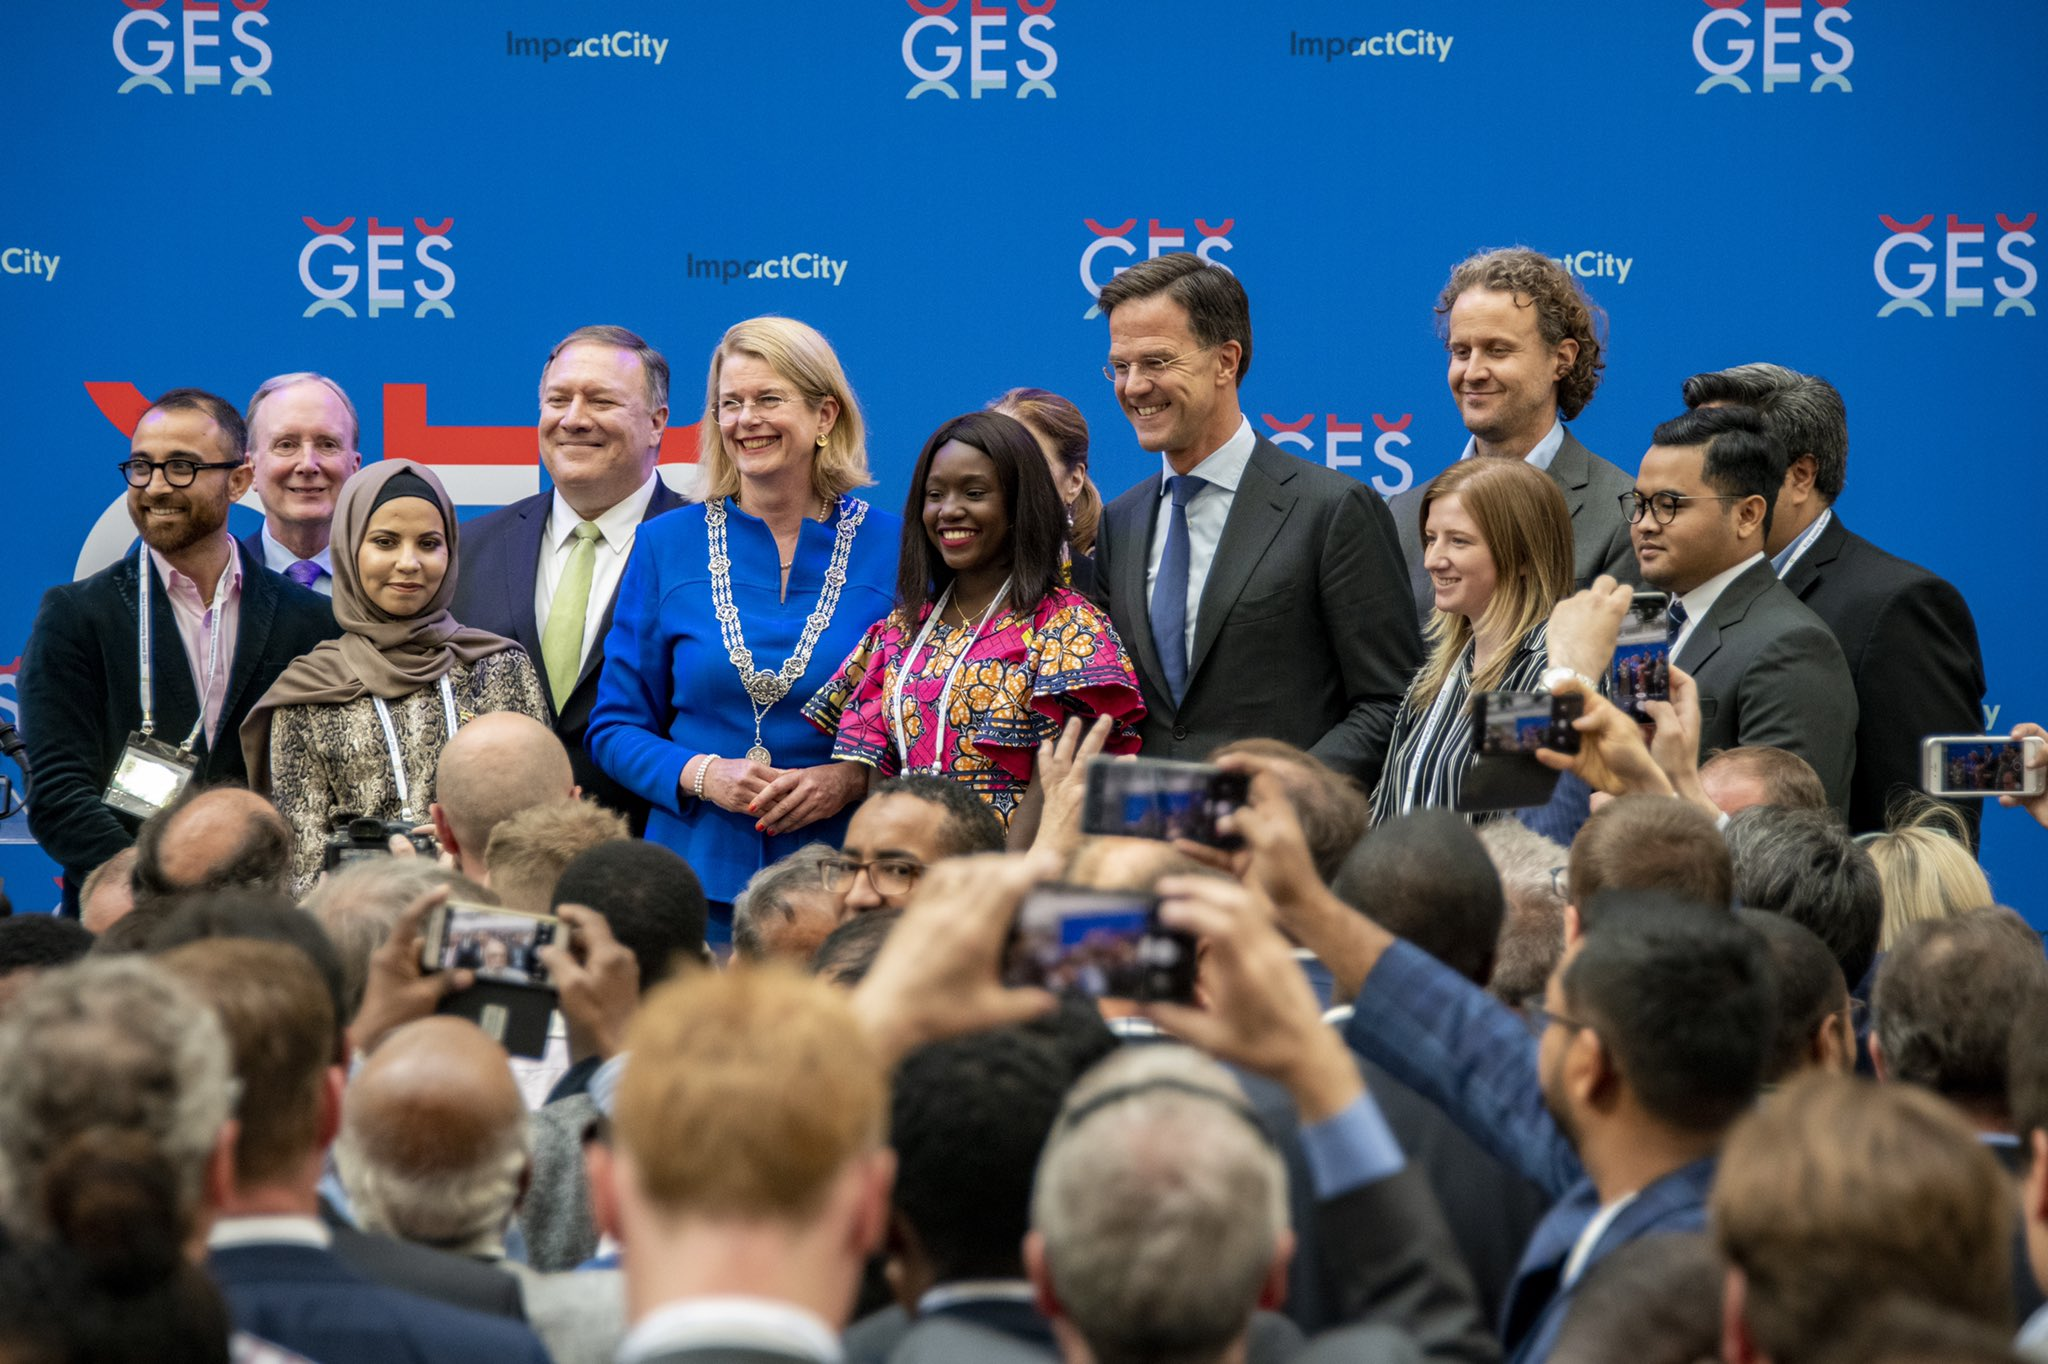 African entrepreneur and new USADF grantee Youma Fall (pictured center in floral print) joined GES officials, including U.S. Secretary of State Mike Pompeo and Dutch Prime Minister Mark Rutte, during the GES opening reception.